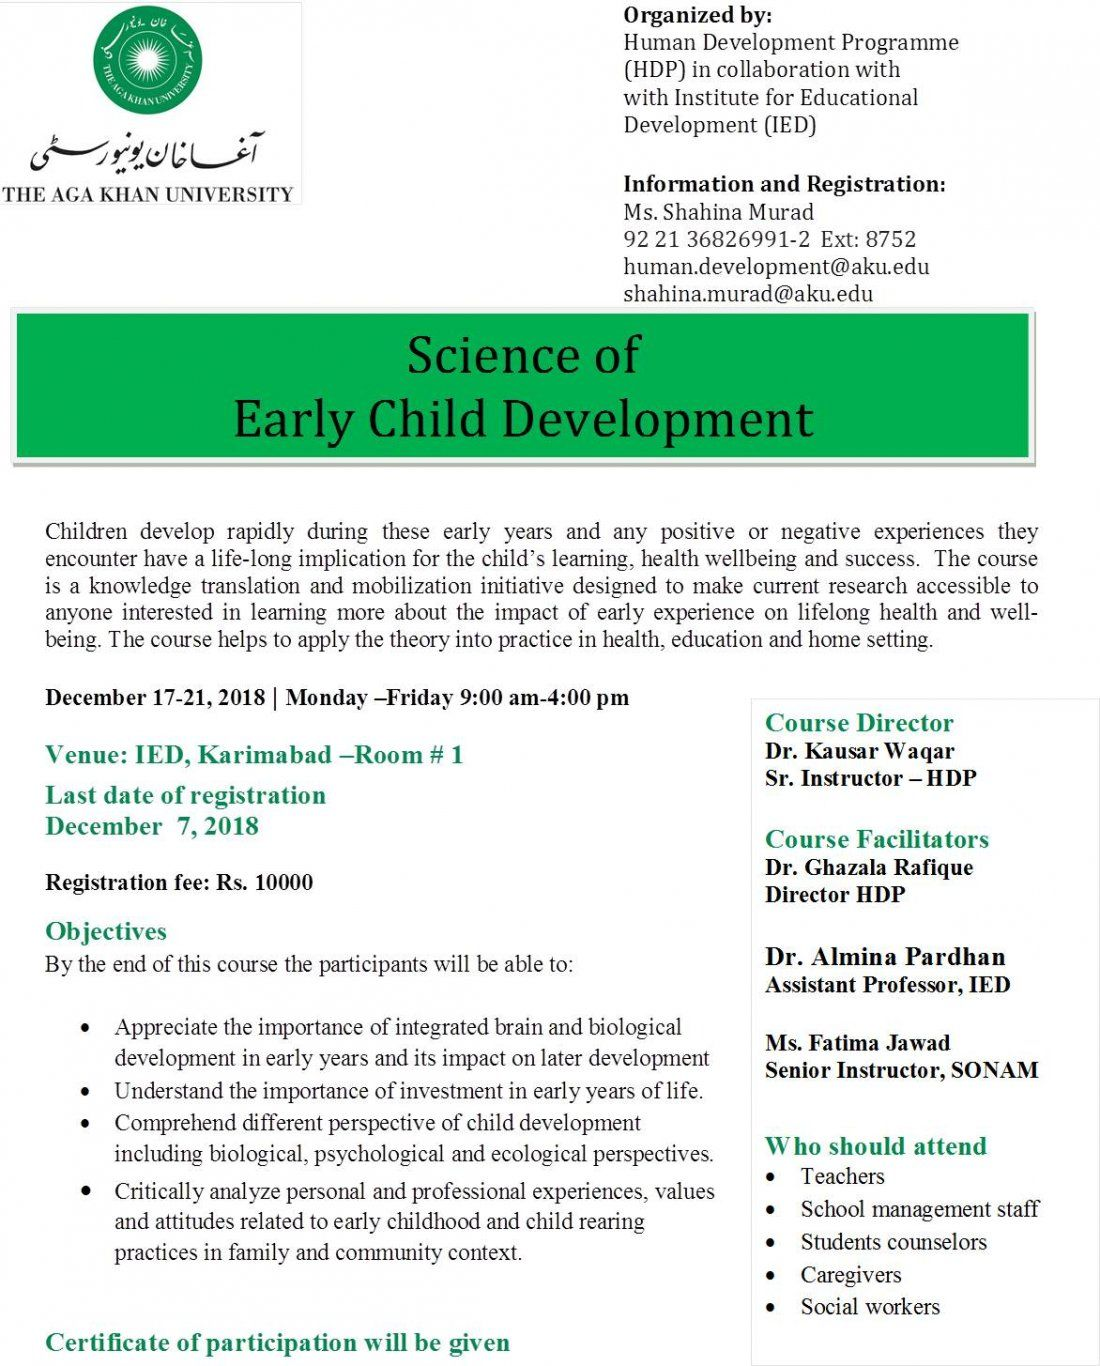 Course on Science of Early Child Development (ECD)